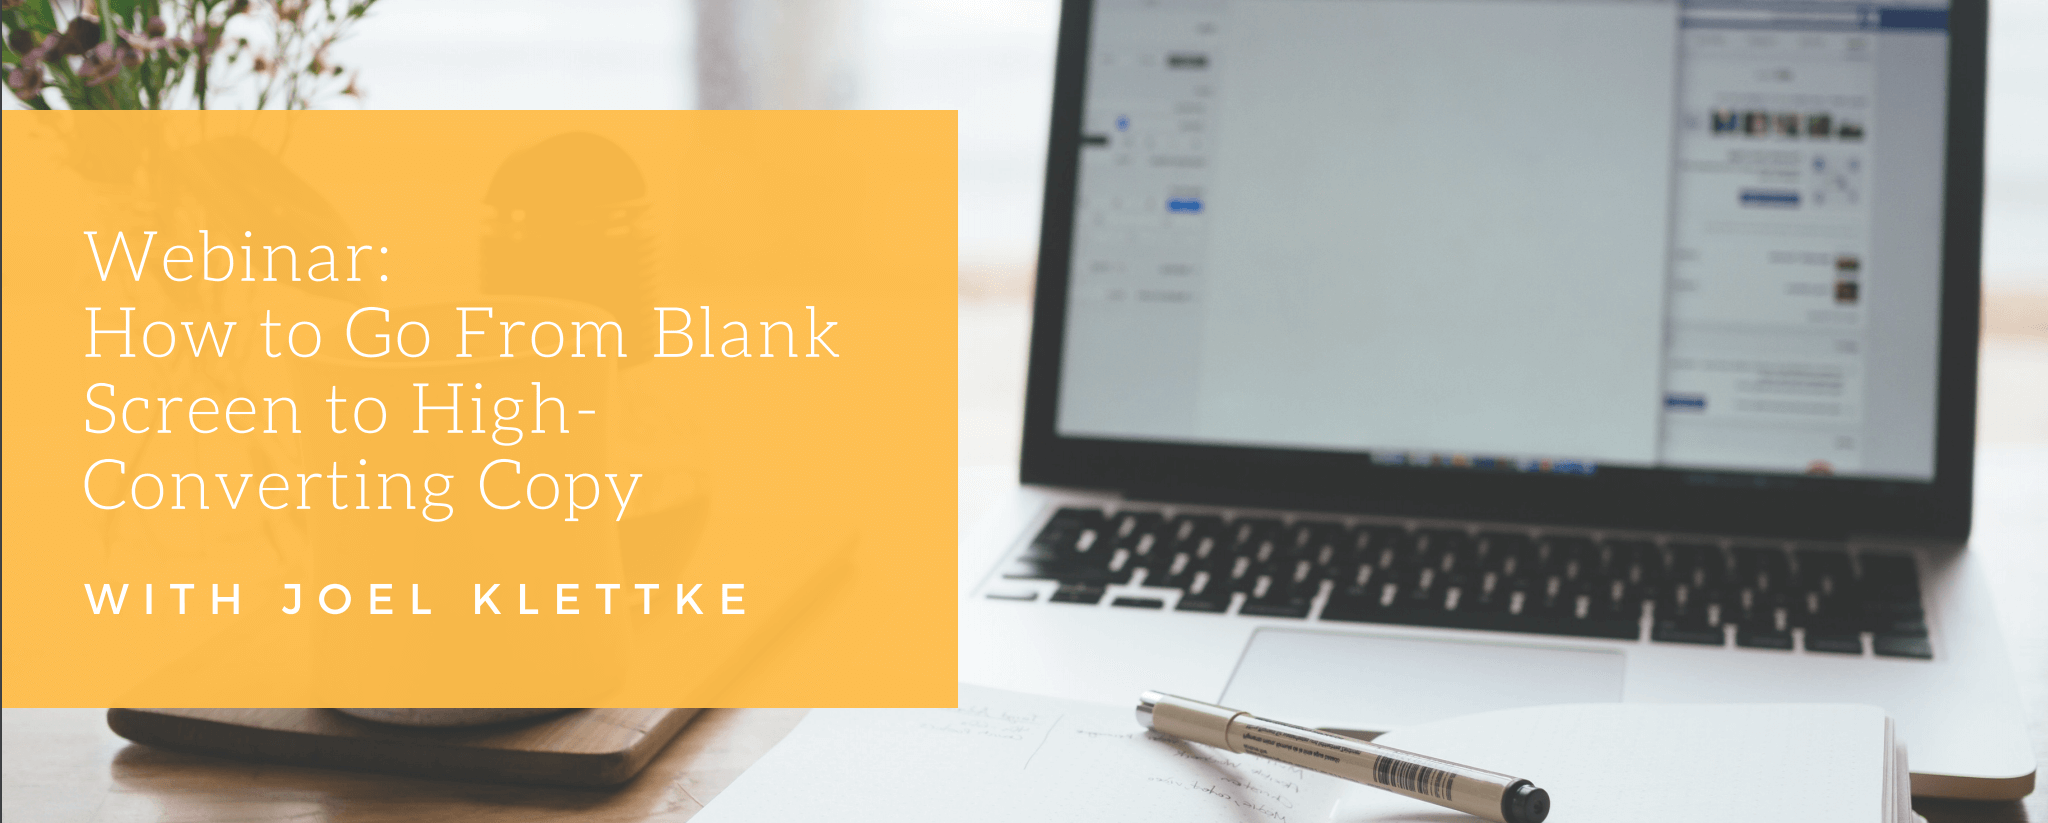 How to go from blank screen to high-converting copy [webinar]